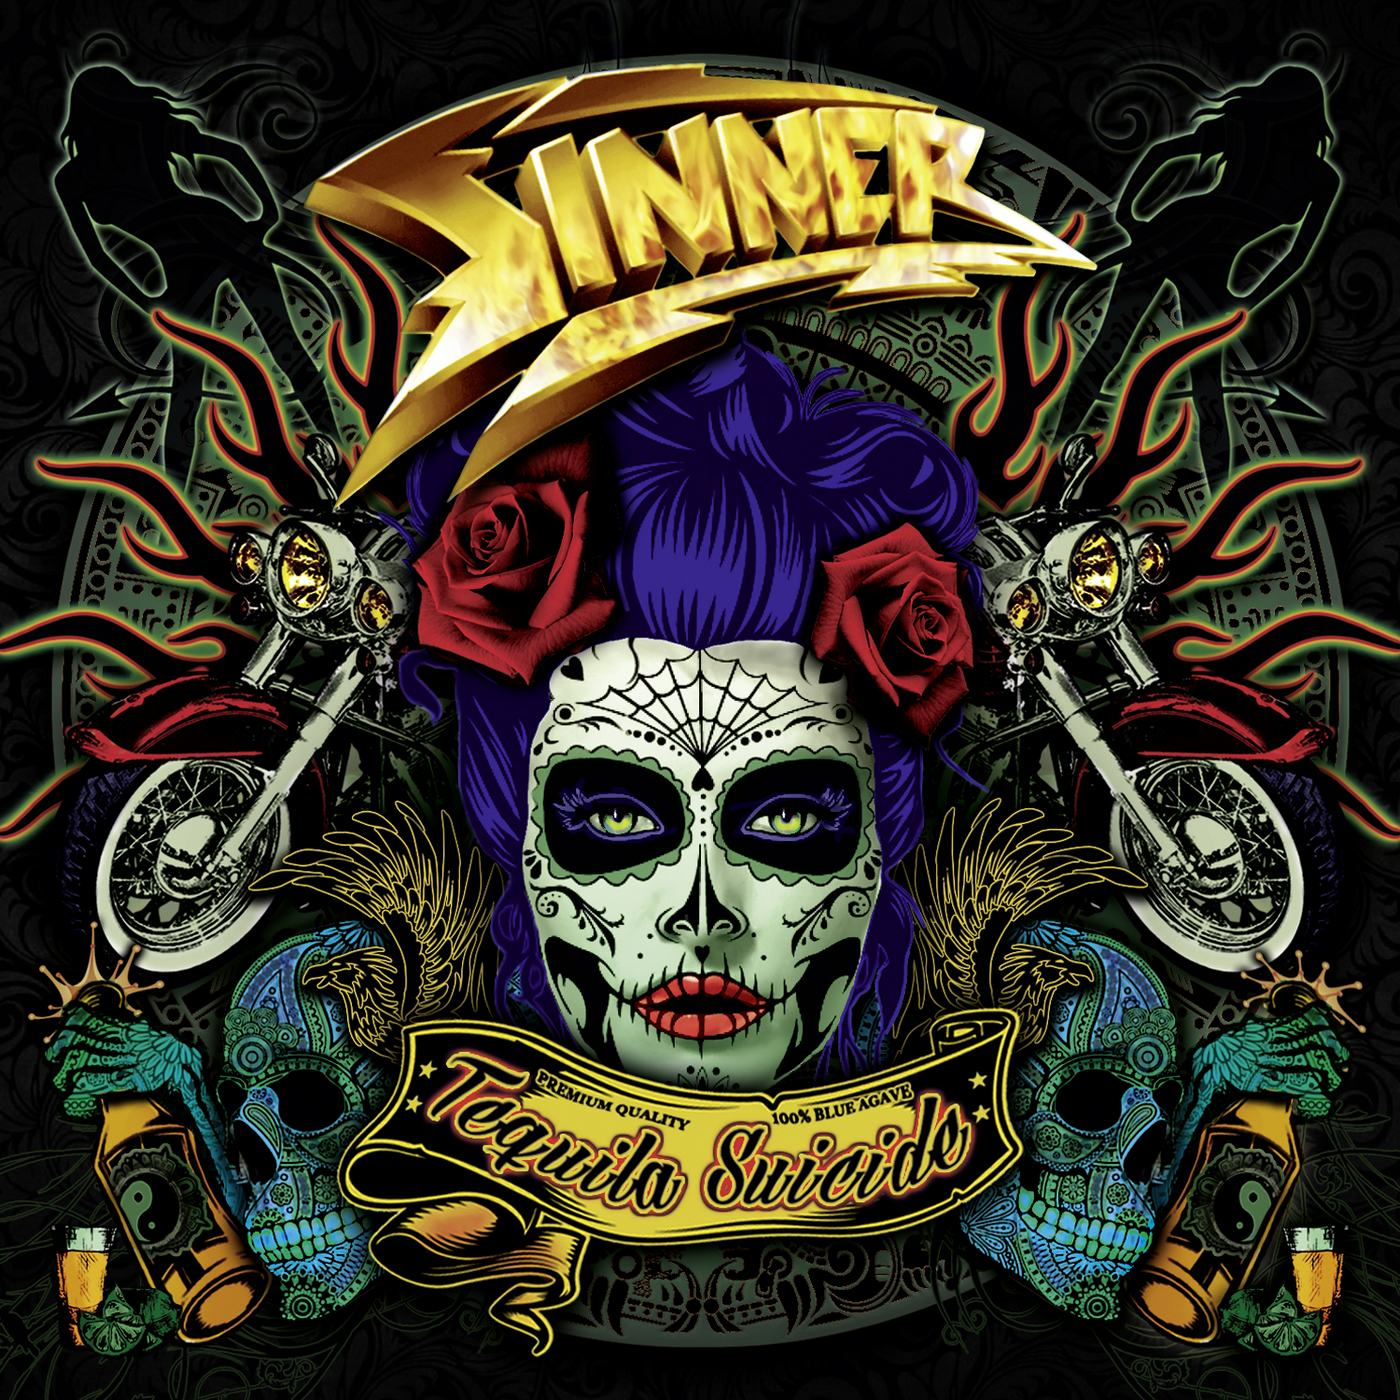 Sinner: Tequila Suicide (2017) Book Cover